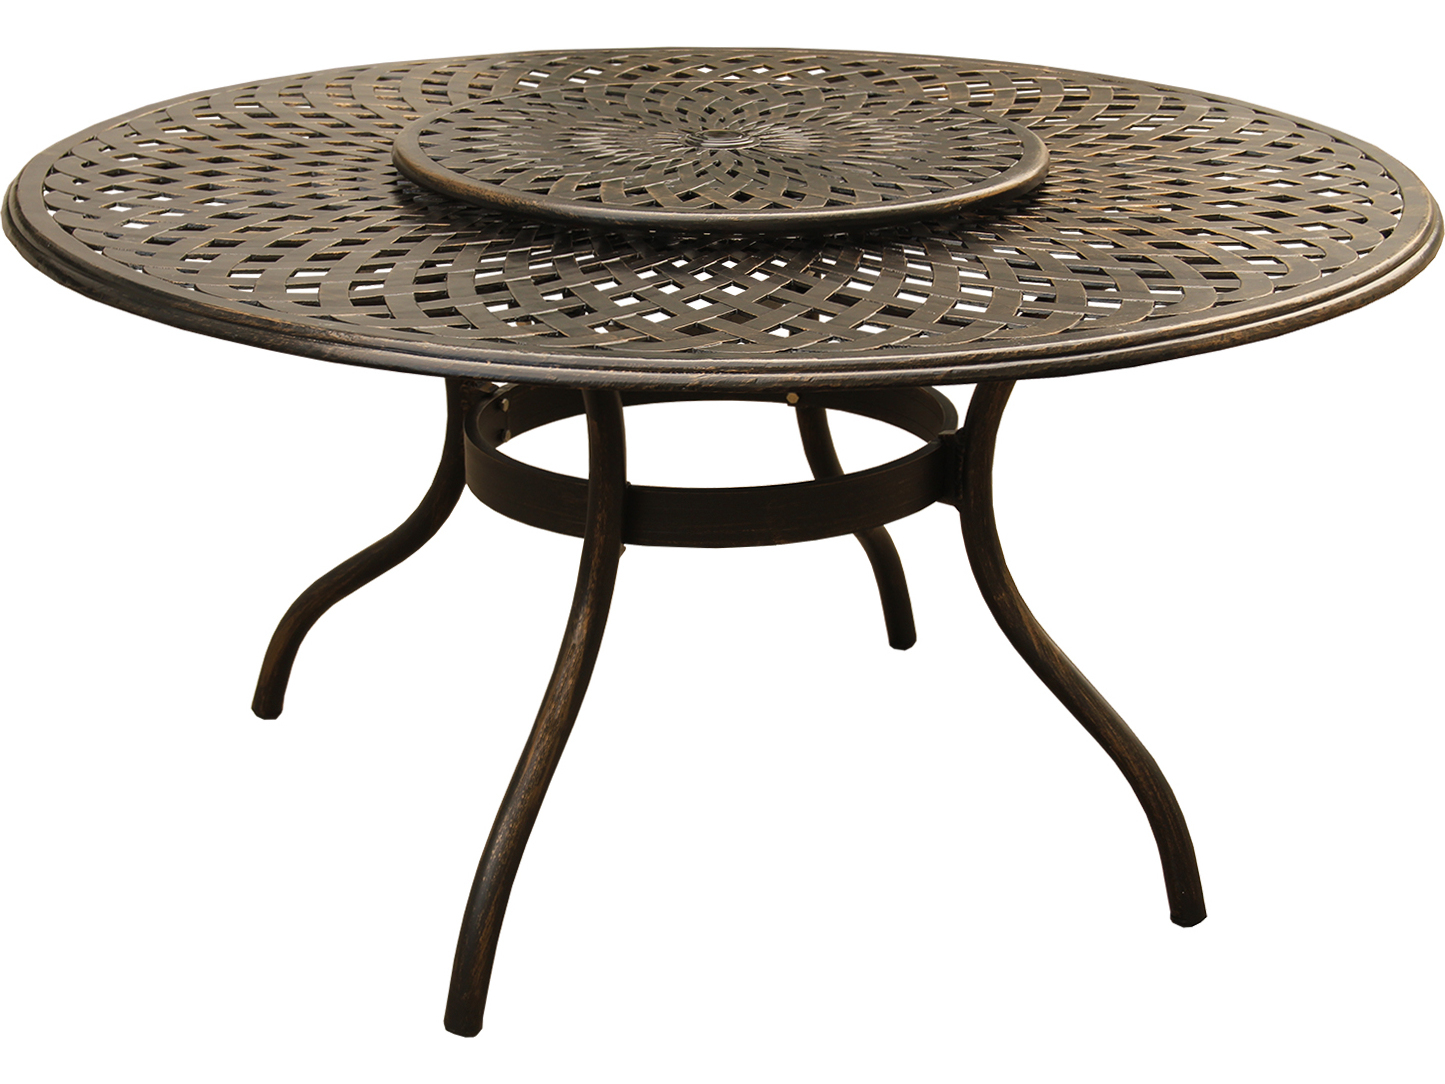 oakland living mesh modern aluminum bronze 59 wide round dining table with lazy susan